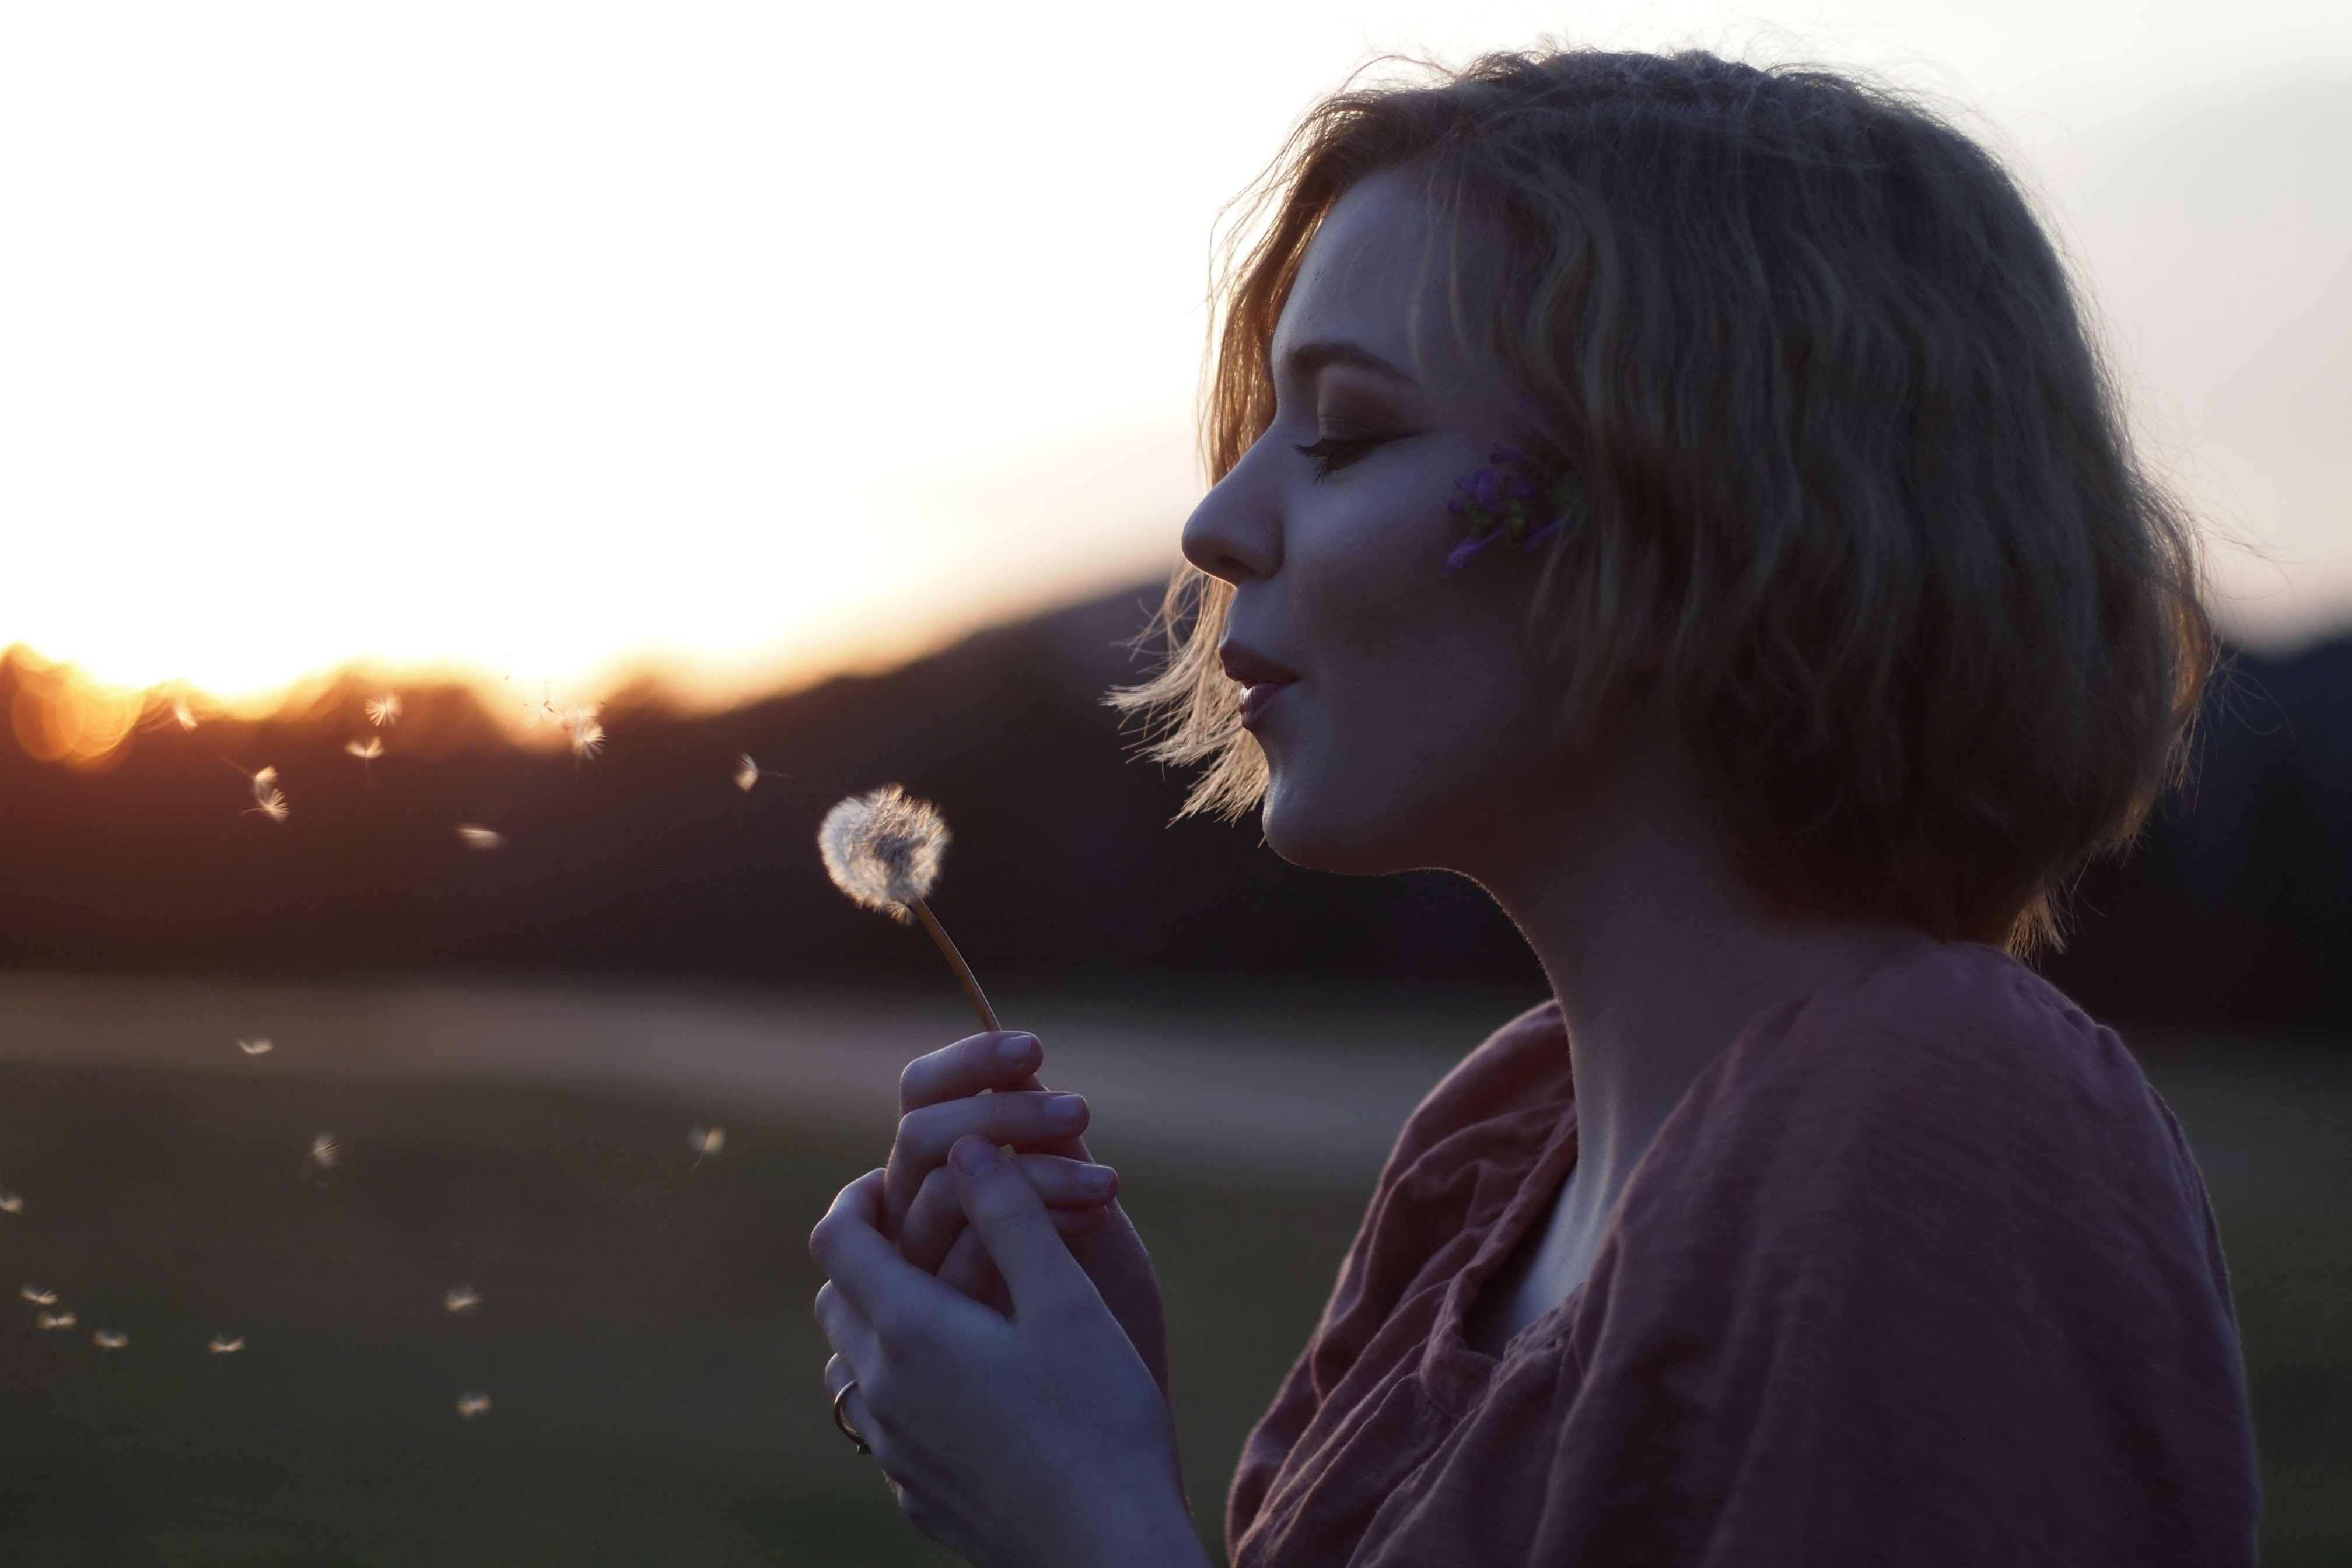 Woman blows dandelion seeds and makes a wish